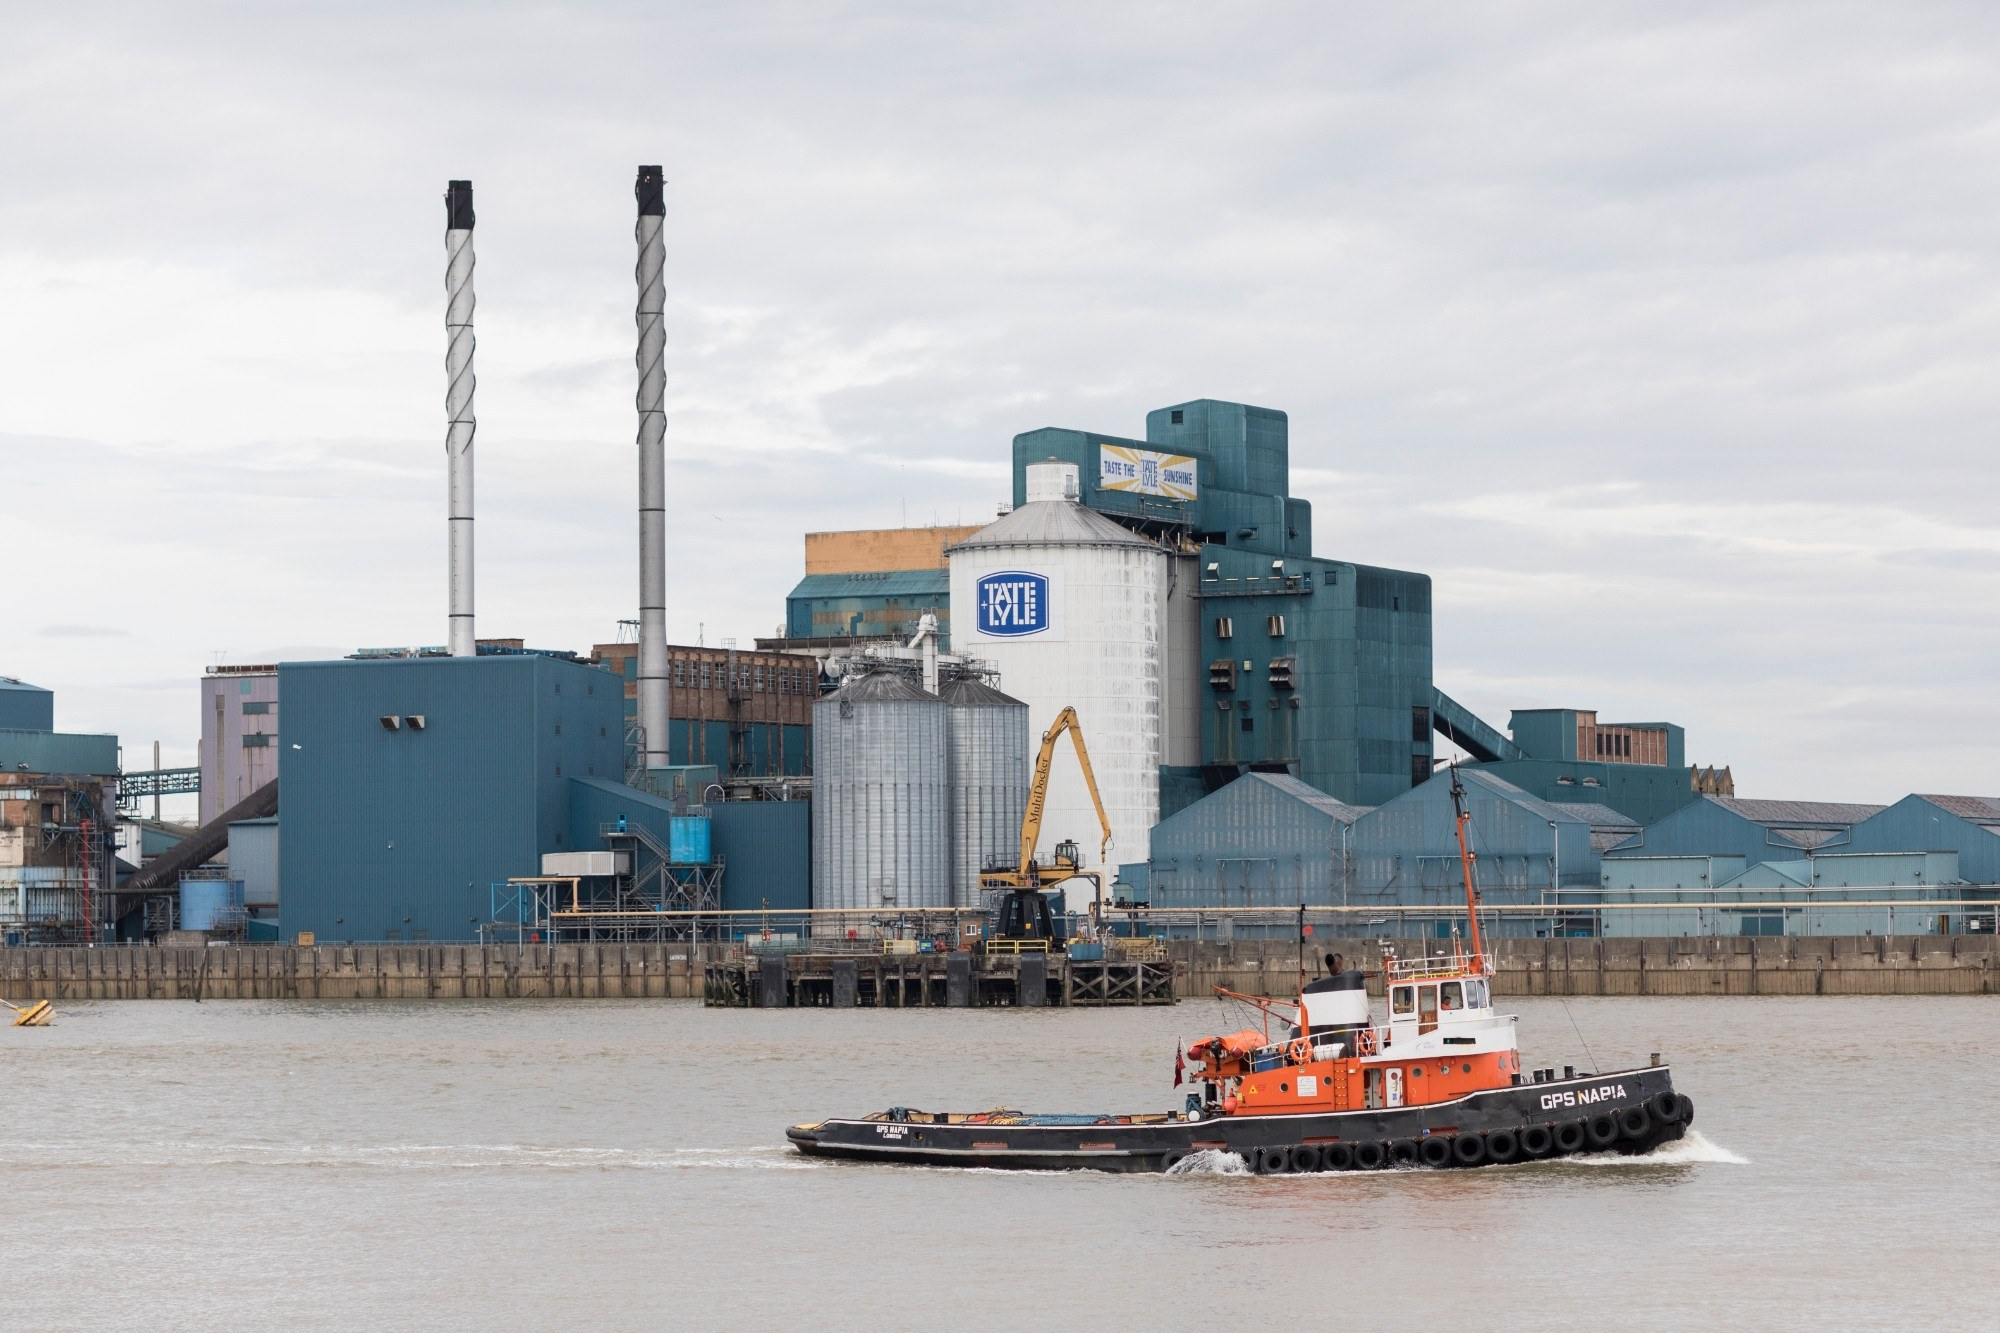 Tate & Lyle building exterior from the river with a boat in the foreground and big chimneys visible